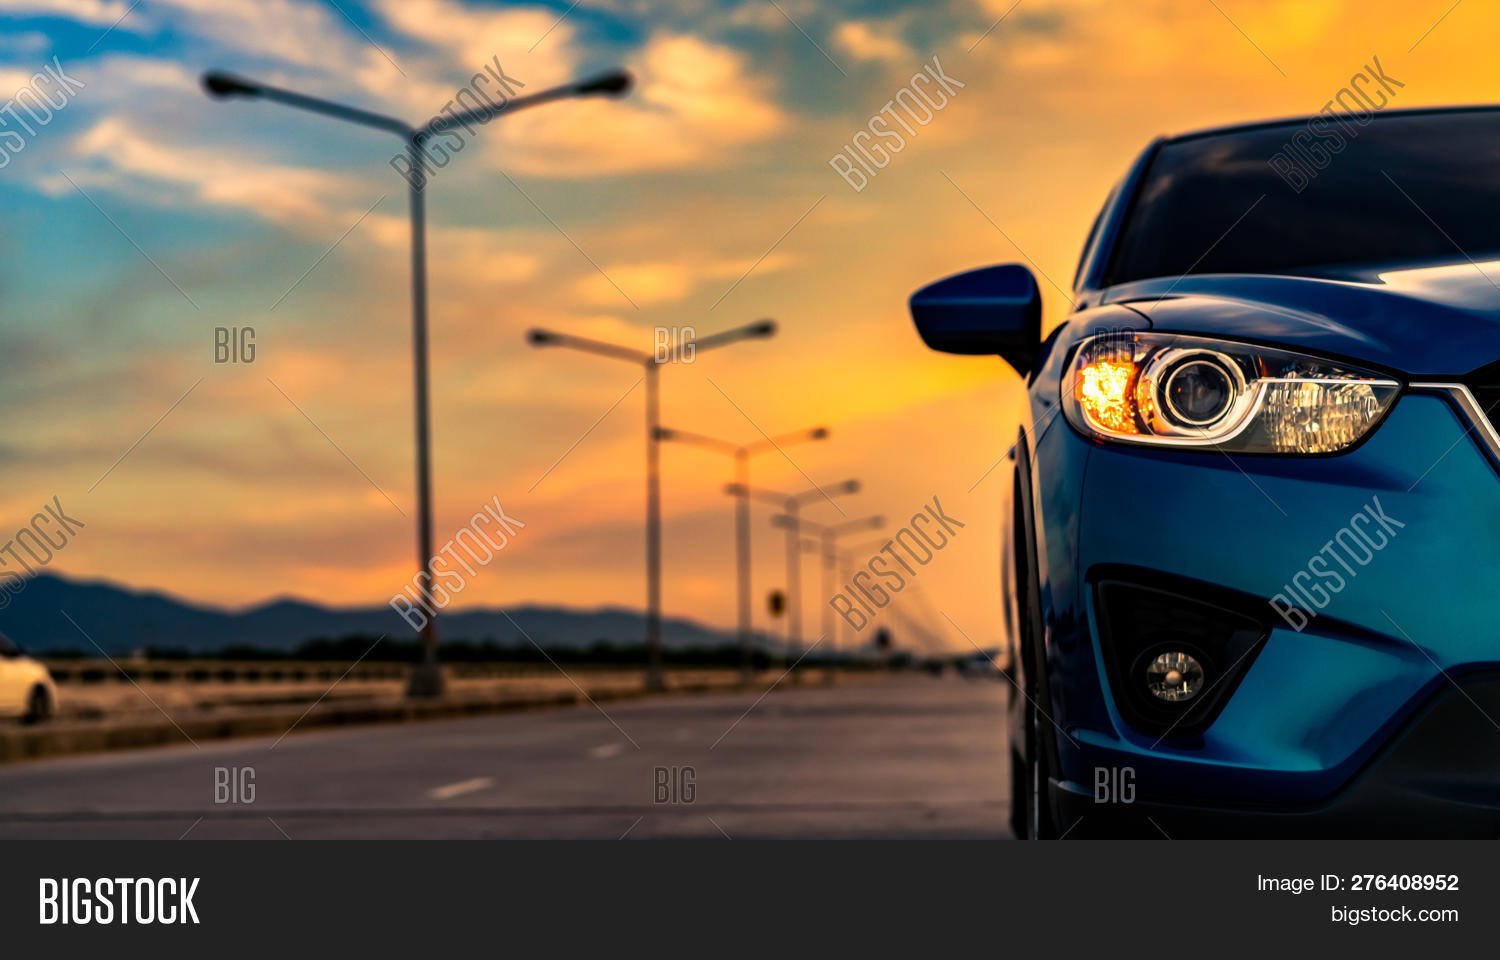 auto,automobile,automotive,background,beach,blue,blurred,car,care,clouds,compact,concrete,drive,electric,evening,fog,front,head,headlights,highway,hybrid,lamp,light,luxury,modern,mountain,new,orange,parked,pole,post,rental,road,sea,sky,sport,street,summer,sun,sunrise,sunset,suv,technology,transport,travel,trip,vacation,vehicle,view,white